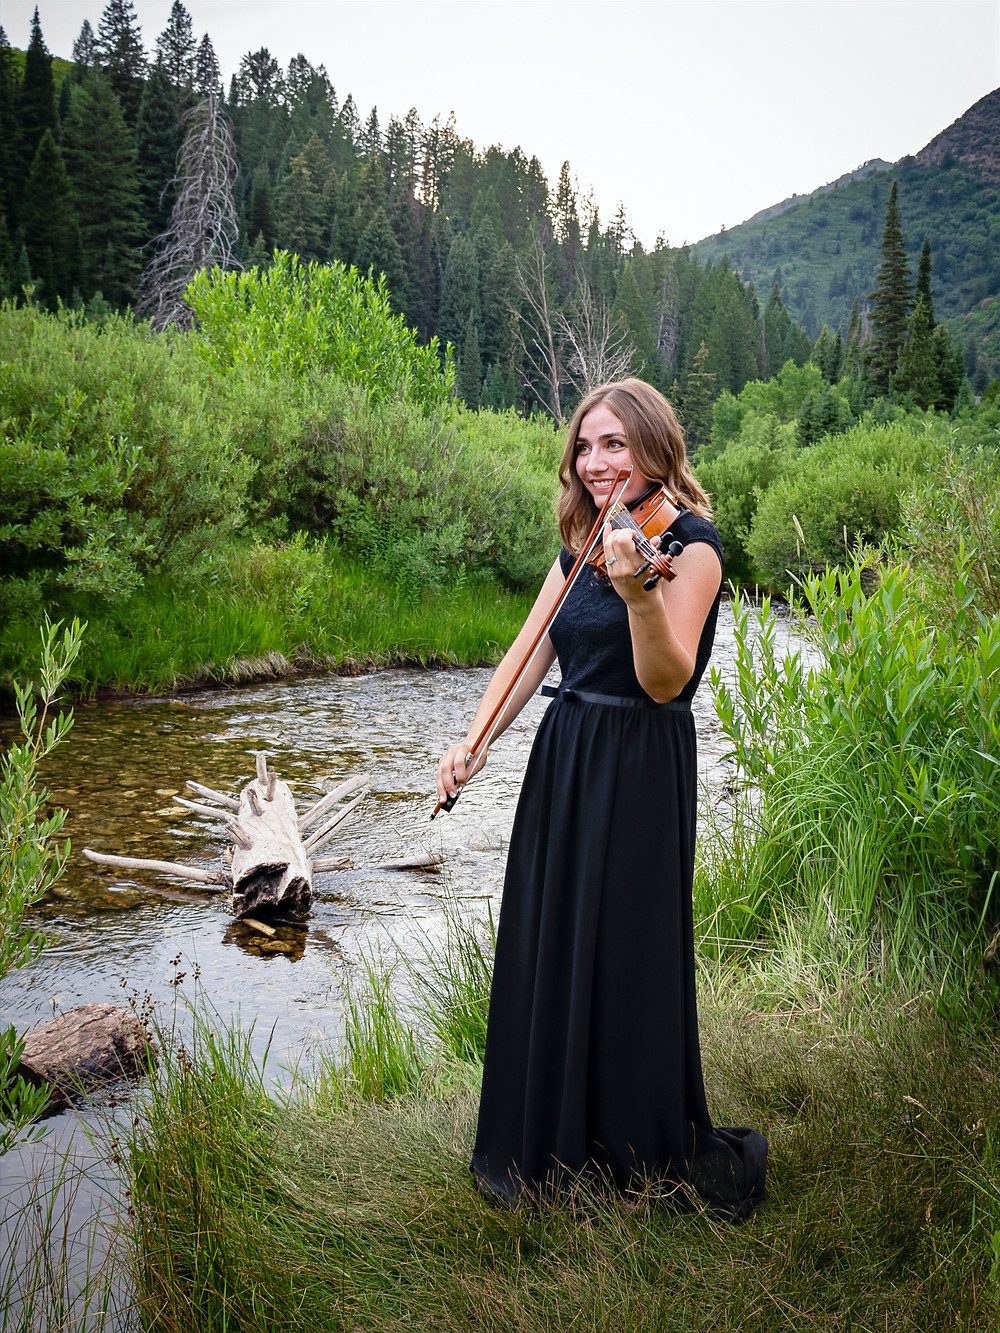 First String Violinist playing the violin by a beautiful river in Utah